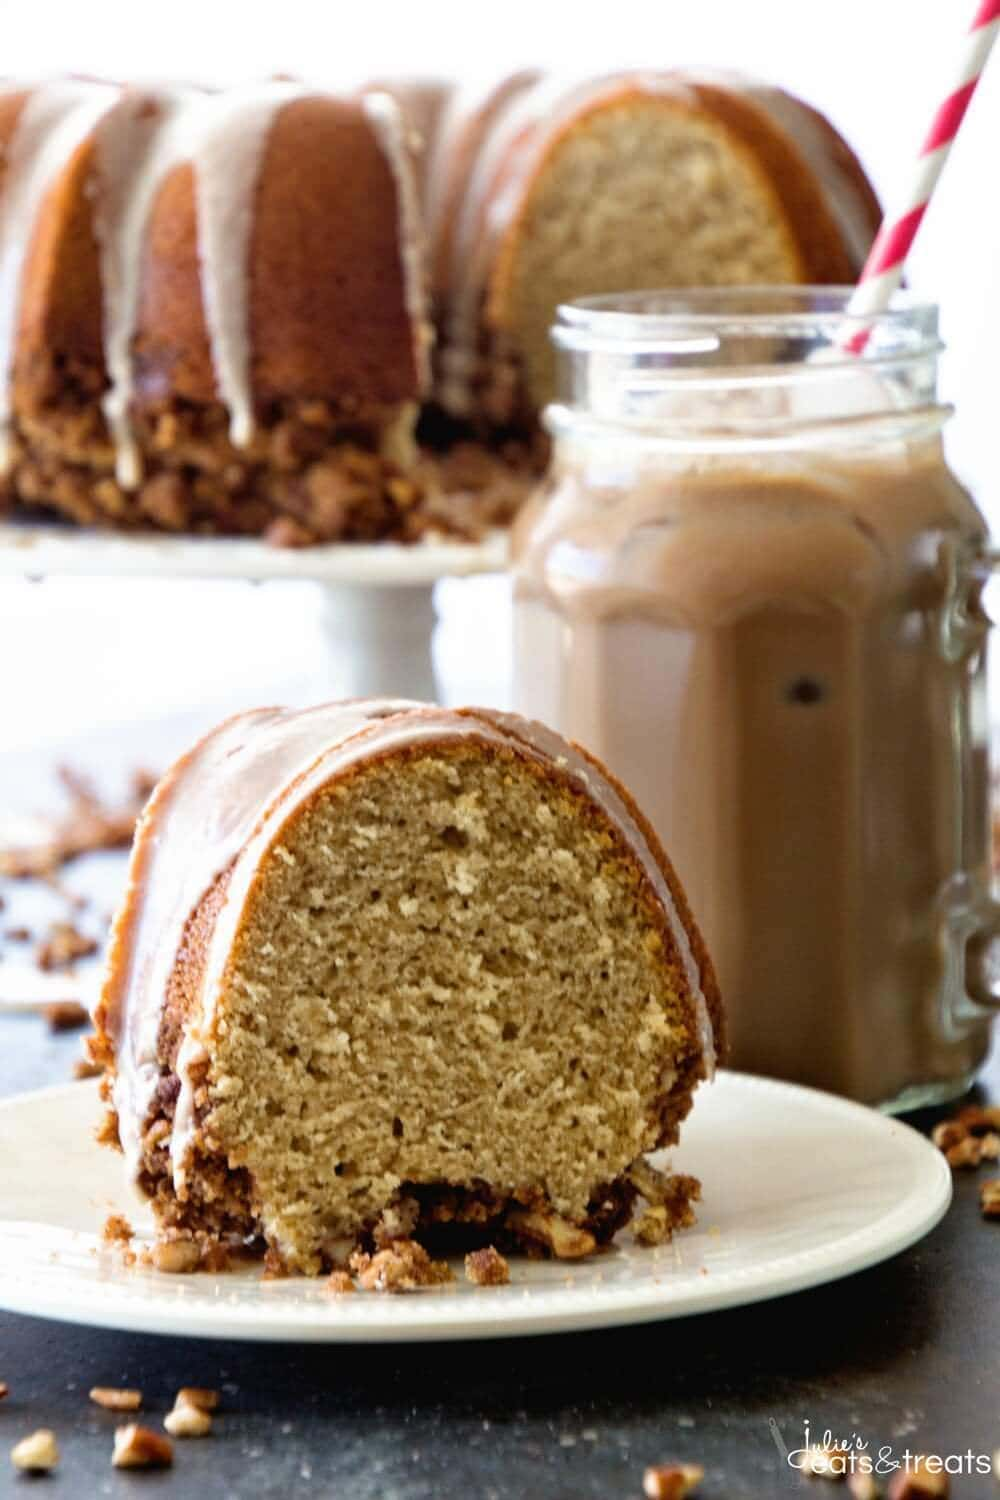 Mocha Iced Coffee Cake ~ Delicious and Easy Coffee Cake Perfect for Breakfast, Brunch or a Snack! Tender, Moist Coffee Cake Drizzled in Mocha Icing!